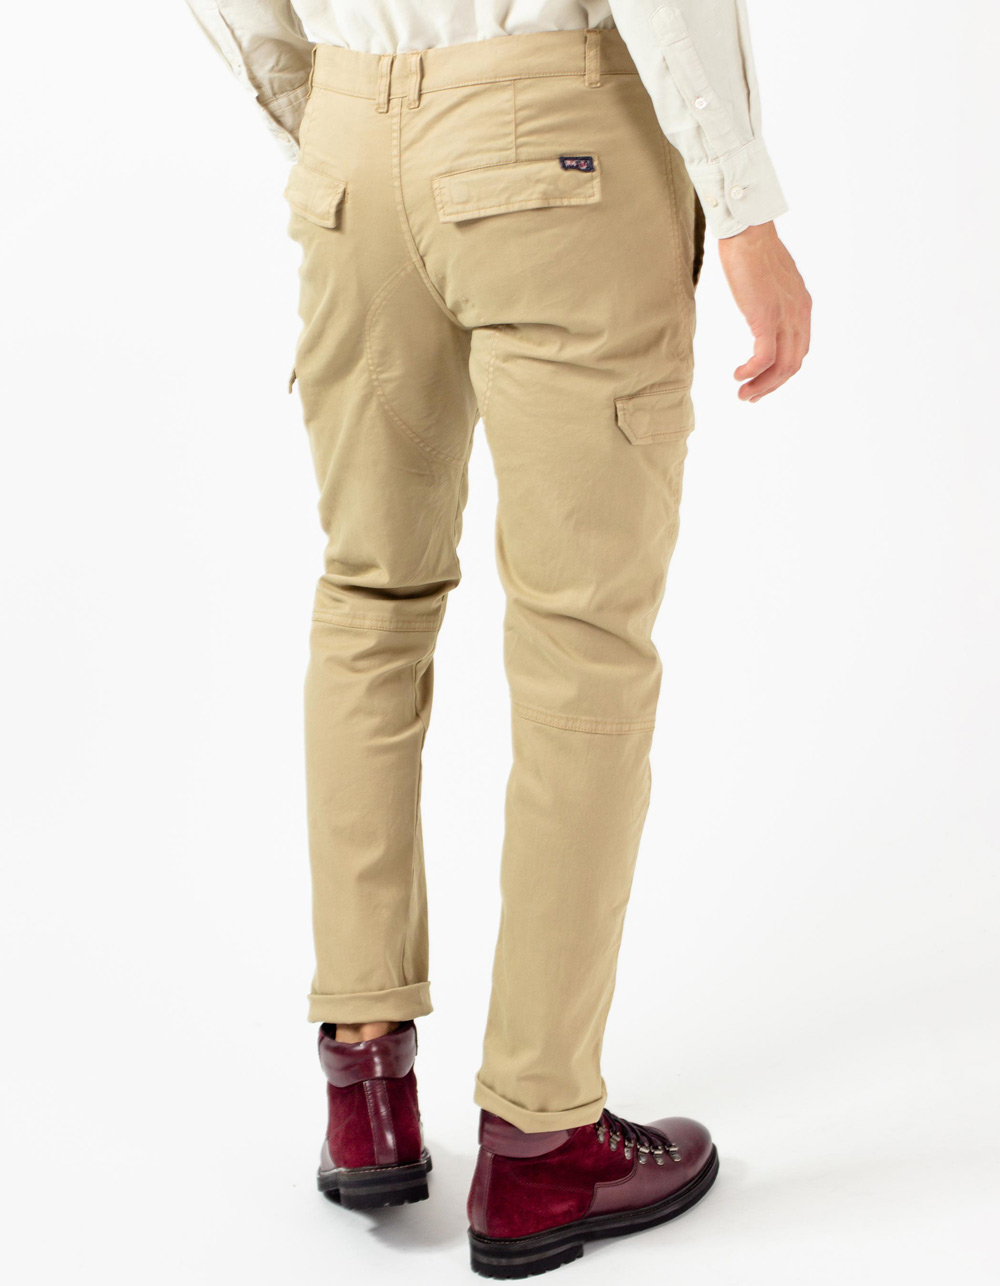 Camel cargo trousers - Backside